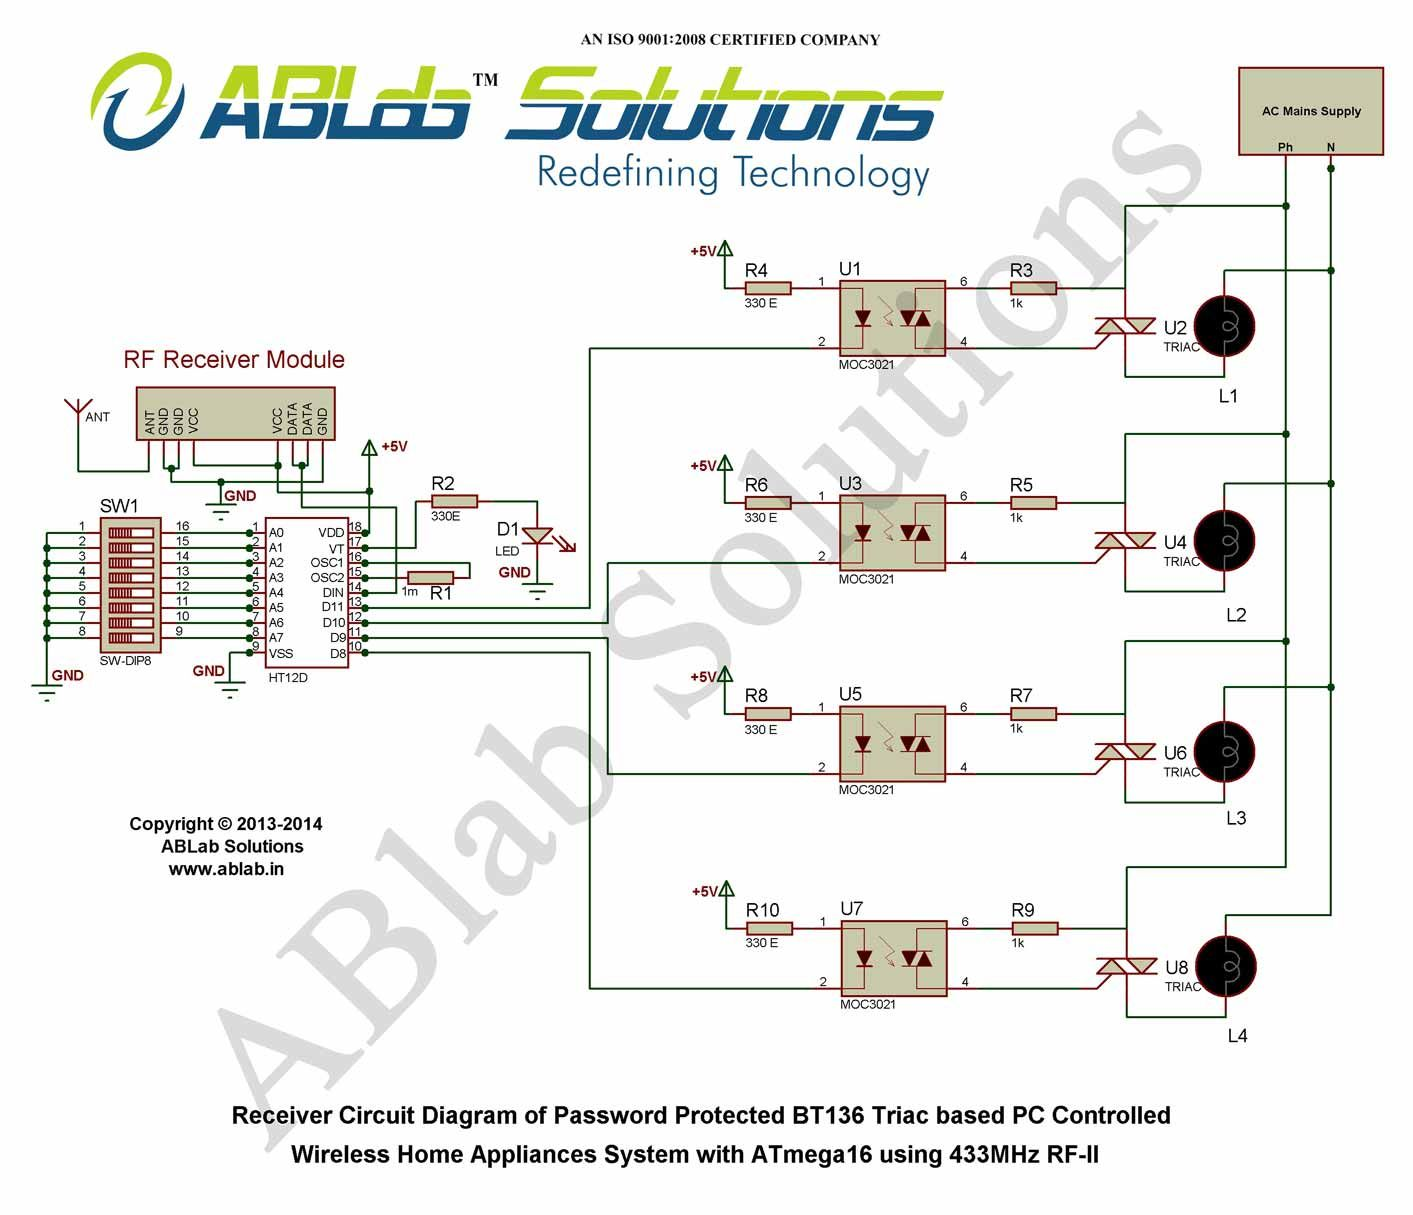 Password Protected Bt136 Triac Based Pc Controlled Wireless Home Accelerometer Wiring Diagram Free Download Diagrams Pictures Appliances System With Avr Atmega16 Microcontroller Using 433mhz Rf Ii Receiver Circuit